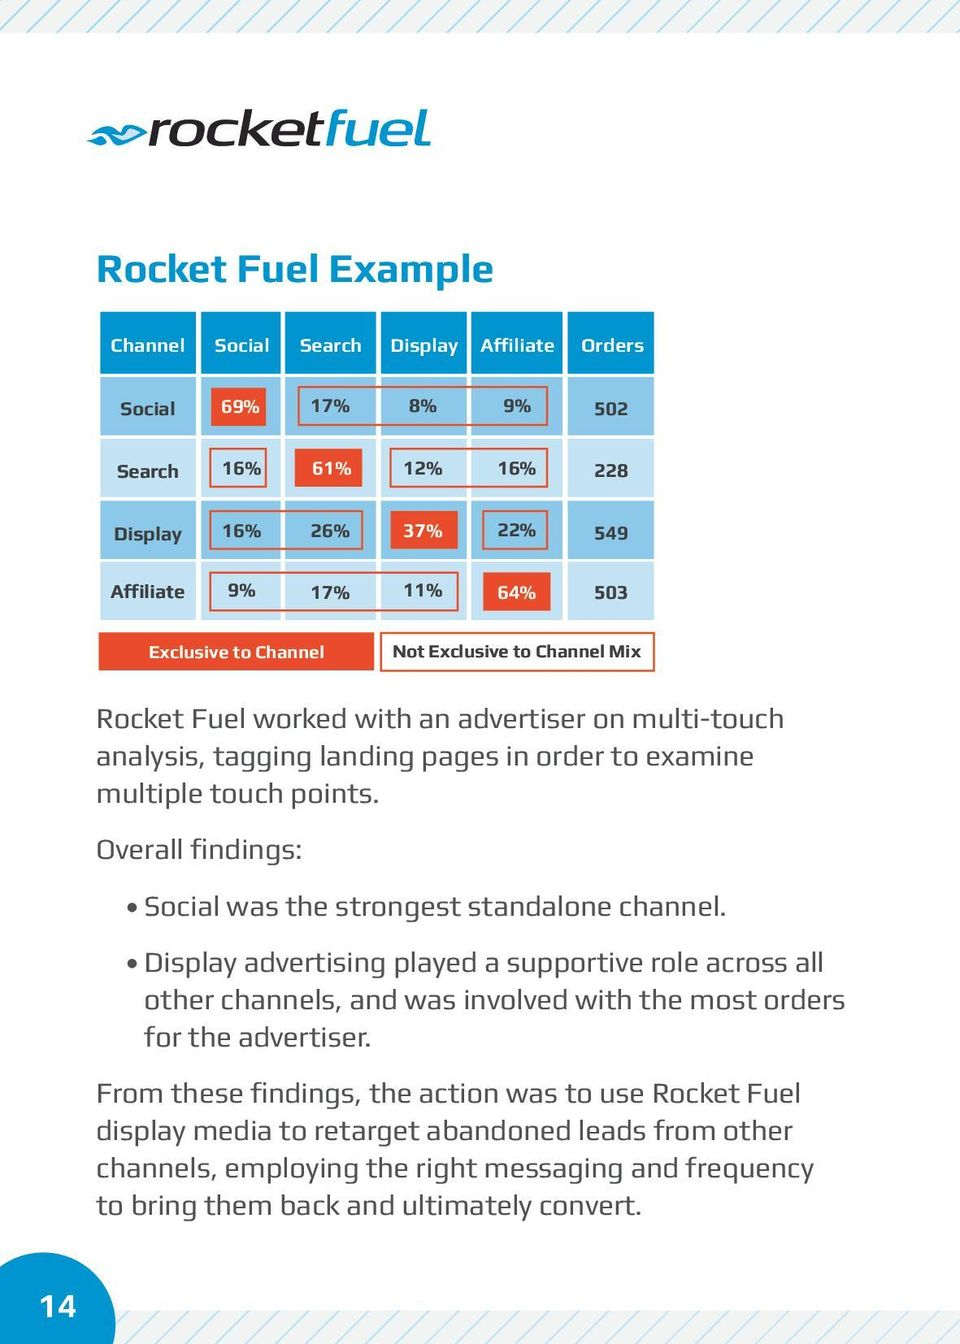 Overall findings: Social was the strongest standalone channel.